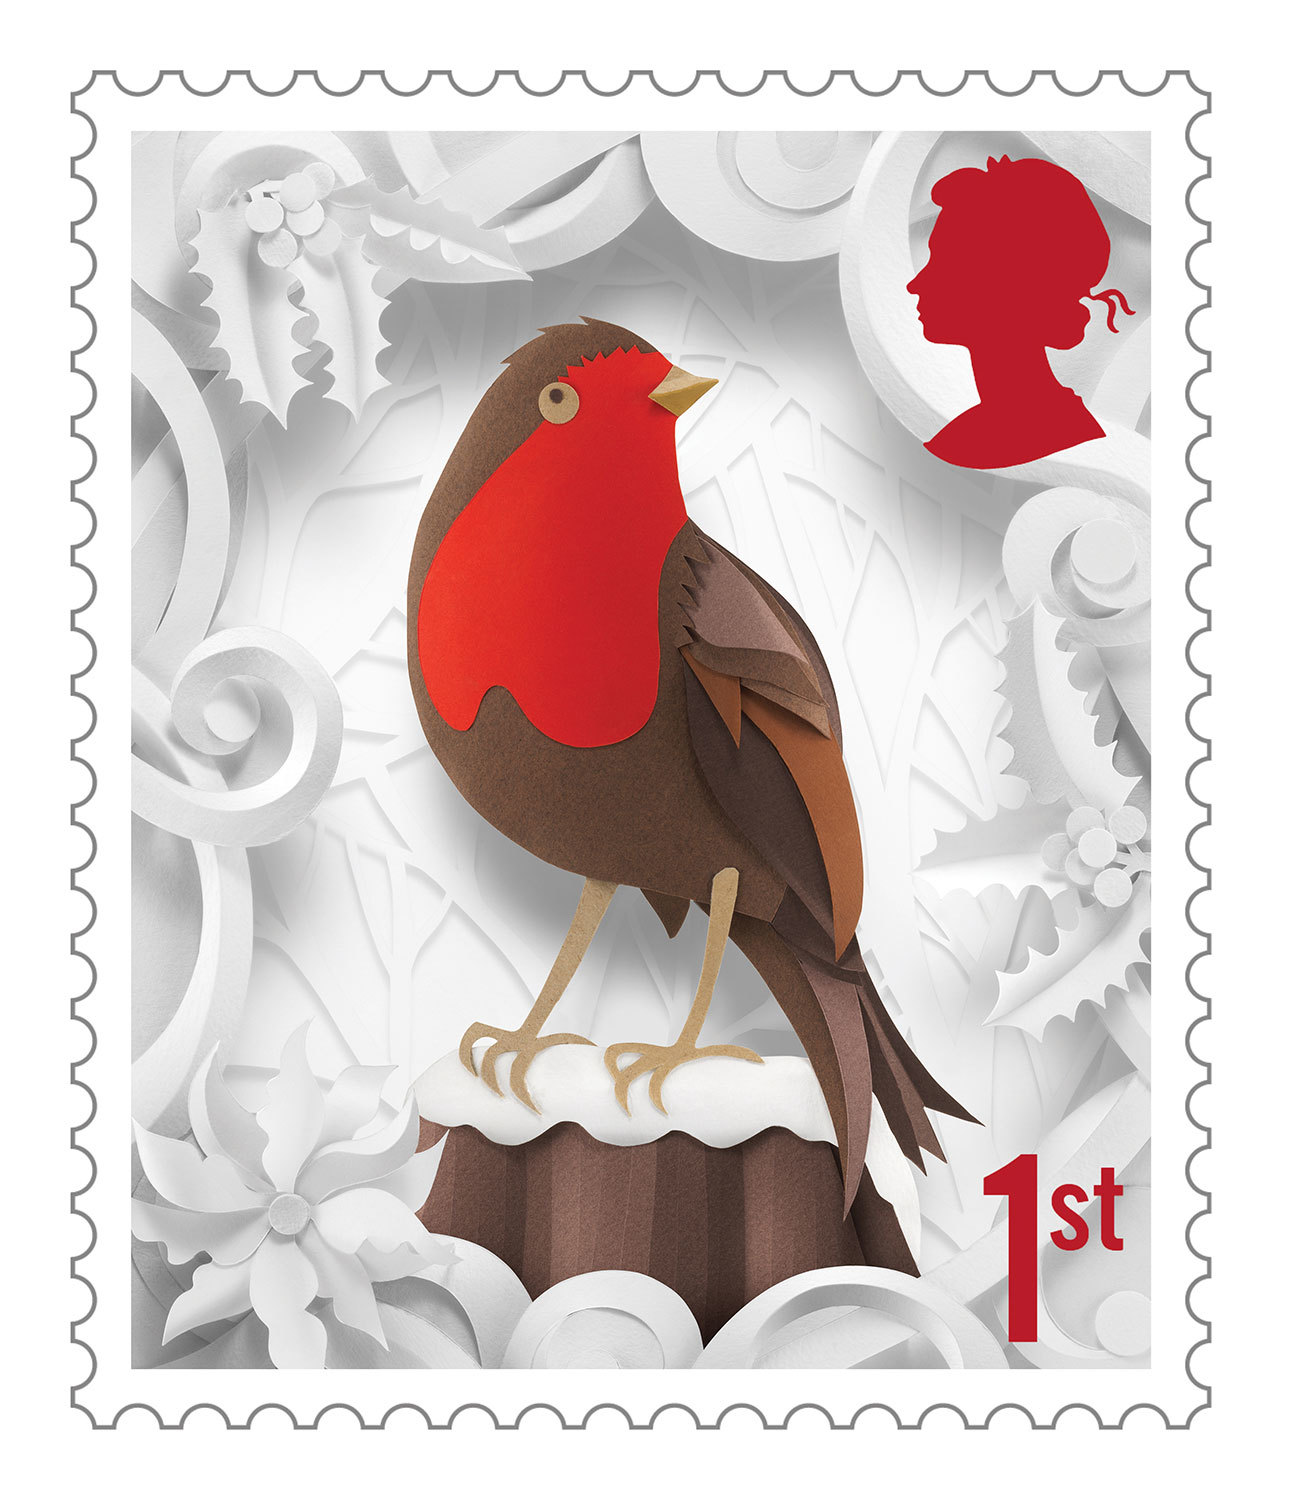 Delightful Christmas Stamp Collection Handcrafted in Paper by Helen Musselwhite - Robin